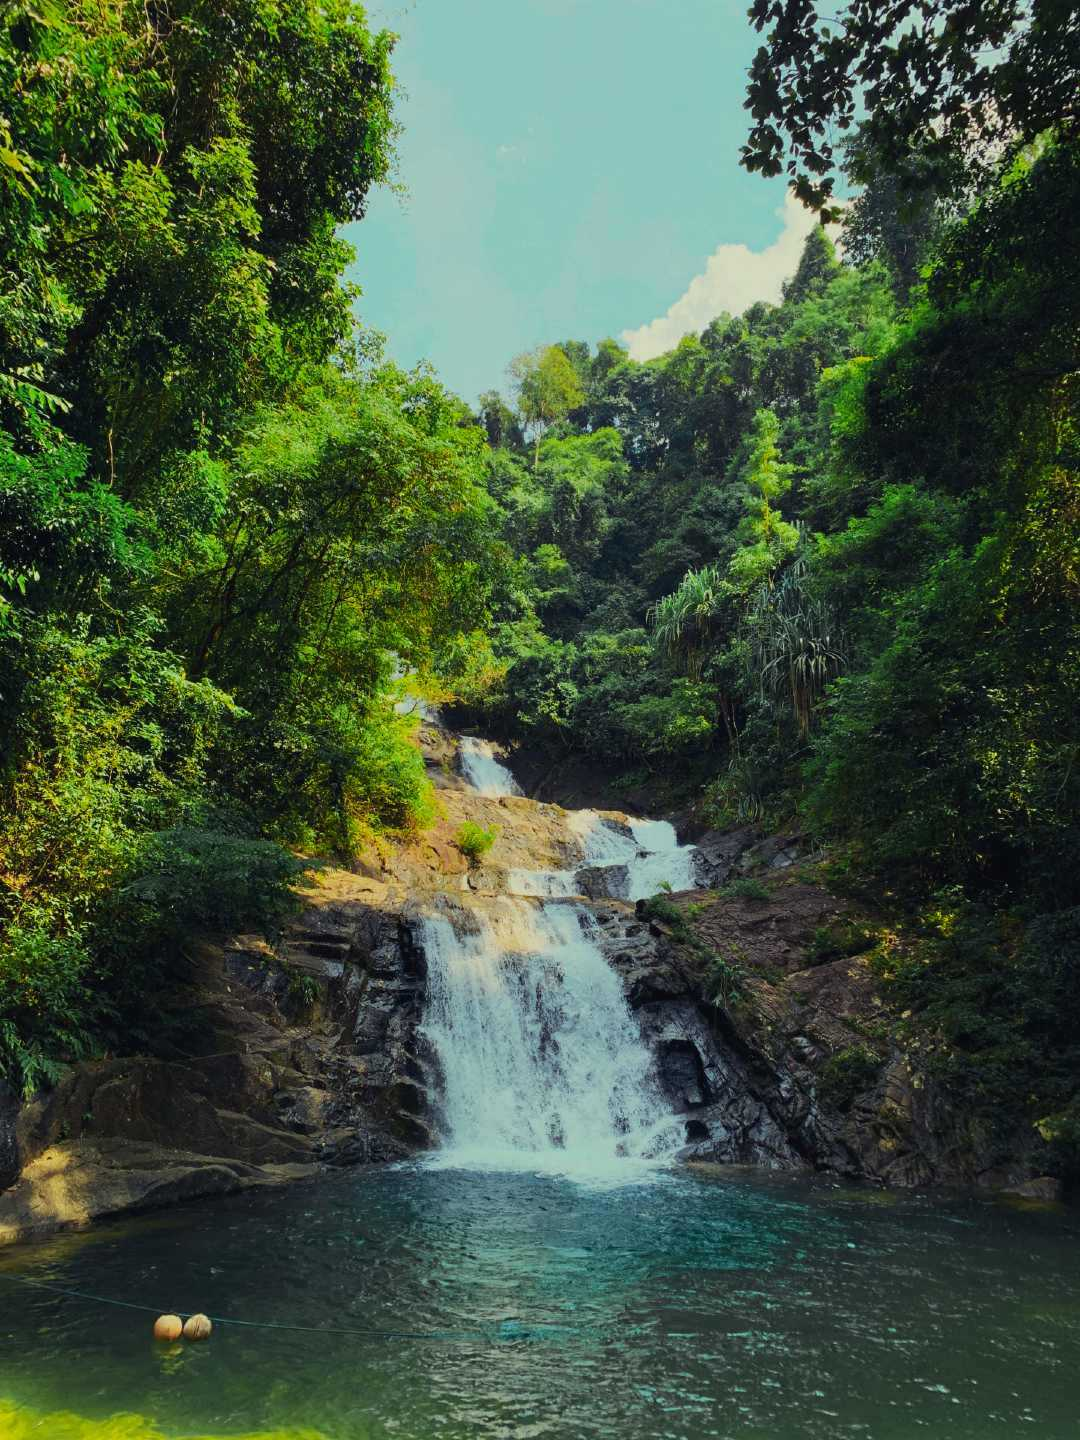 Lampi Waterfall in Khao Lak